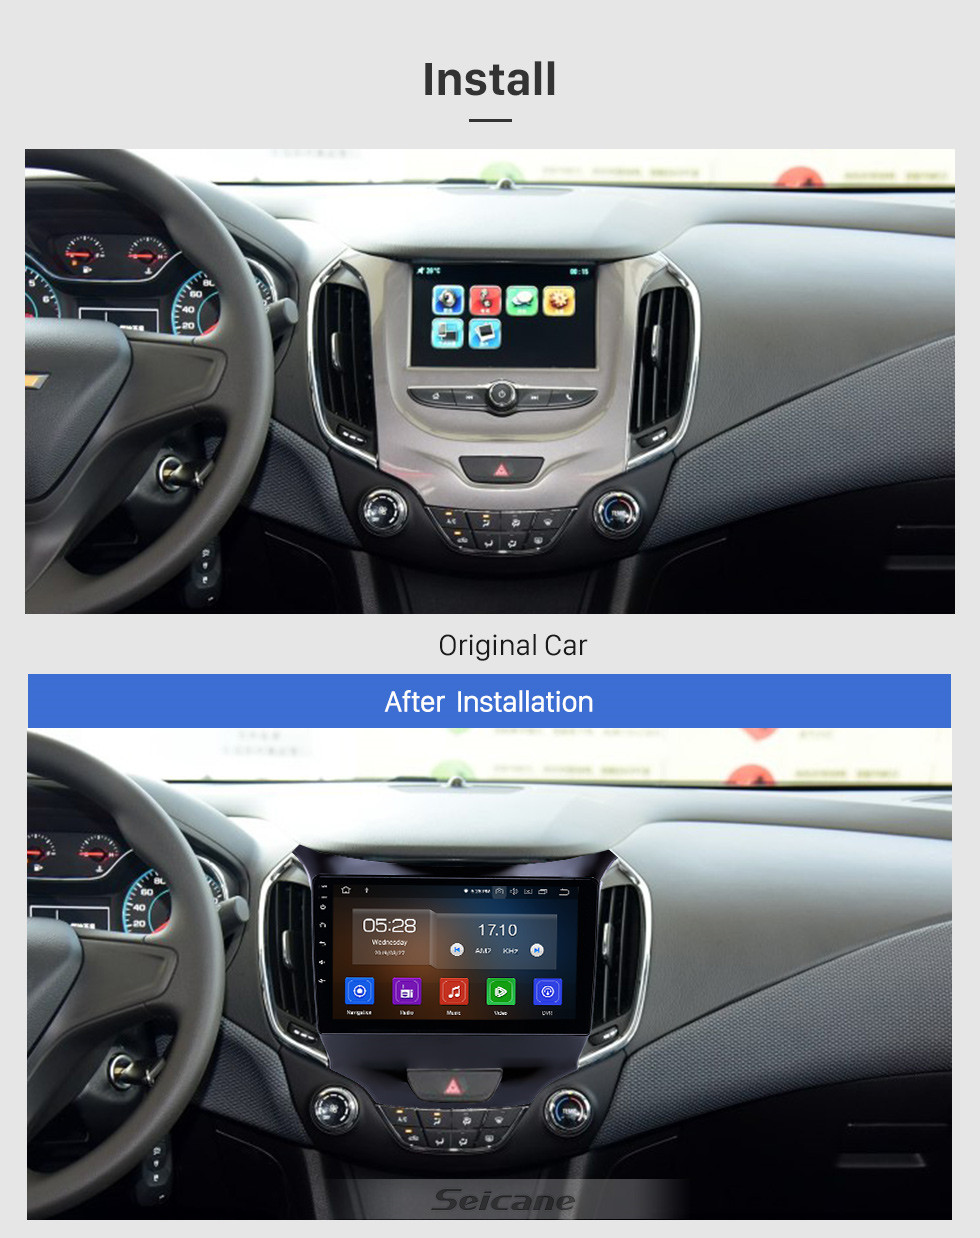 Seicane 2015-2018 chevy Chevrolet Cruze Android 9.0 9 inch GPS Navigation Radio Bluetooth HD Touchscreen WIFI USB Carplay support Digital TV